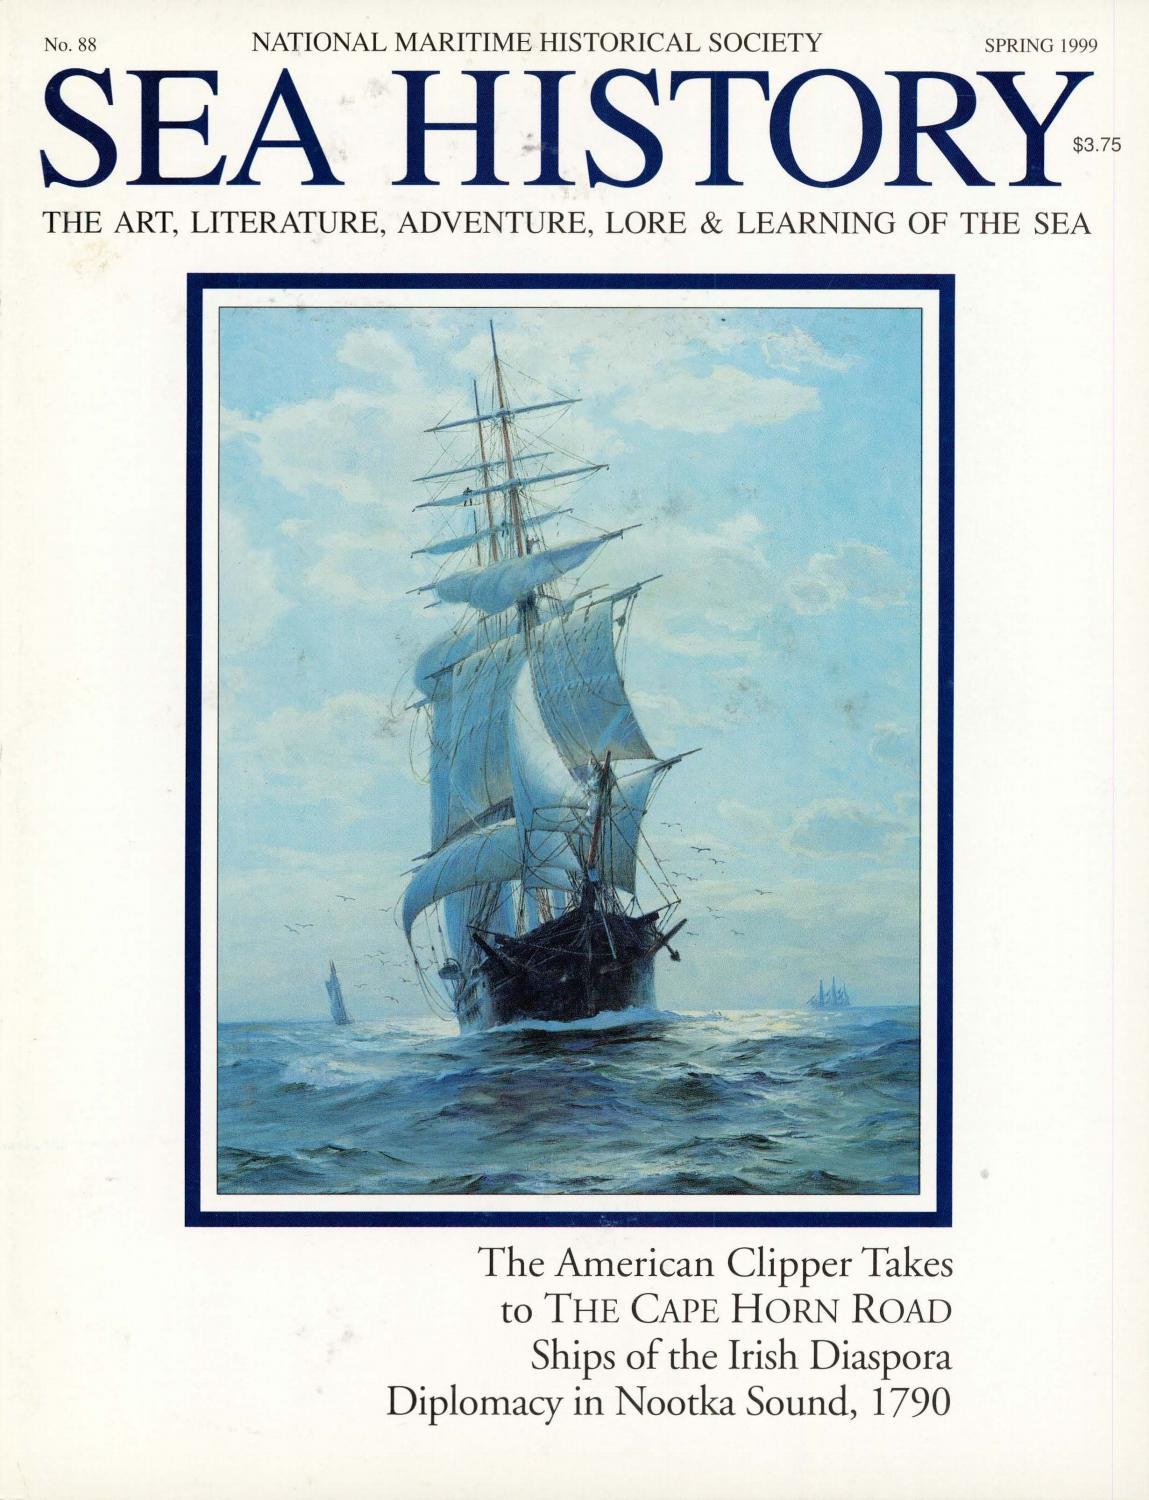 Rosali Bremen Sea History 088 Spring 1999 By National Maritime Historical